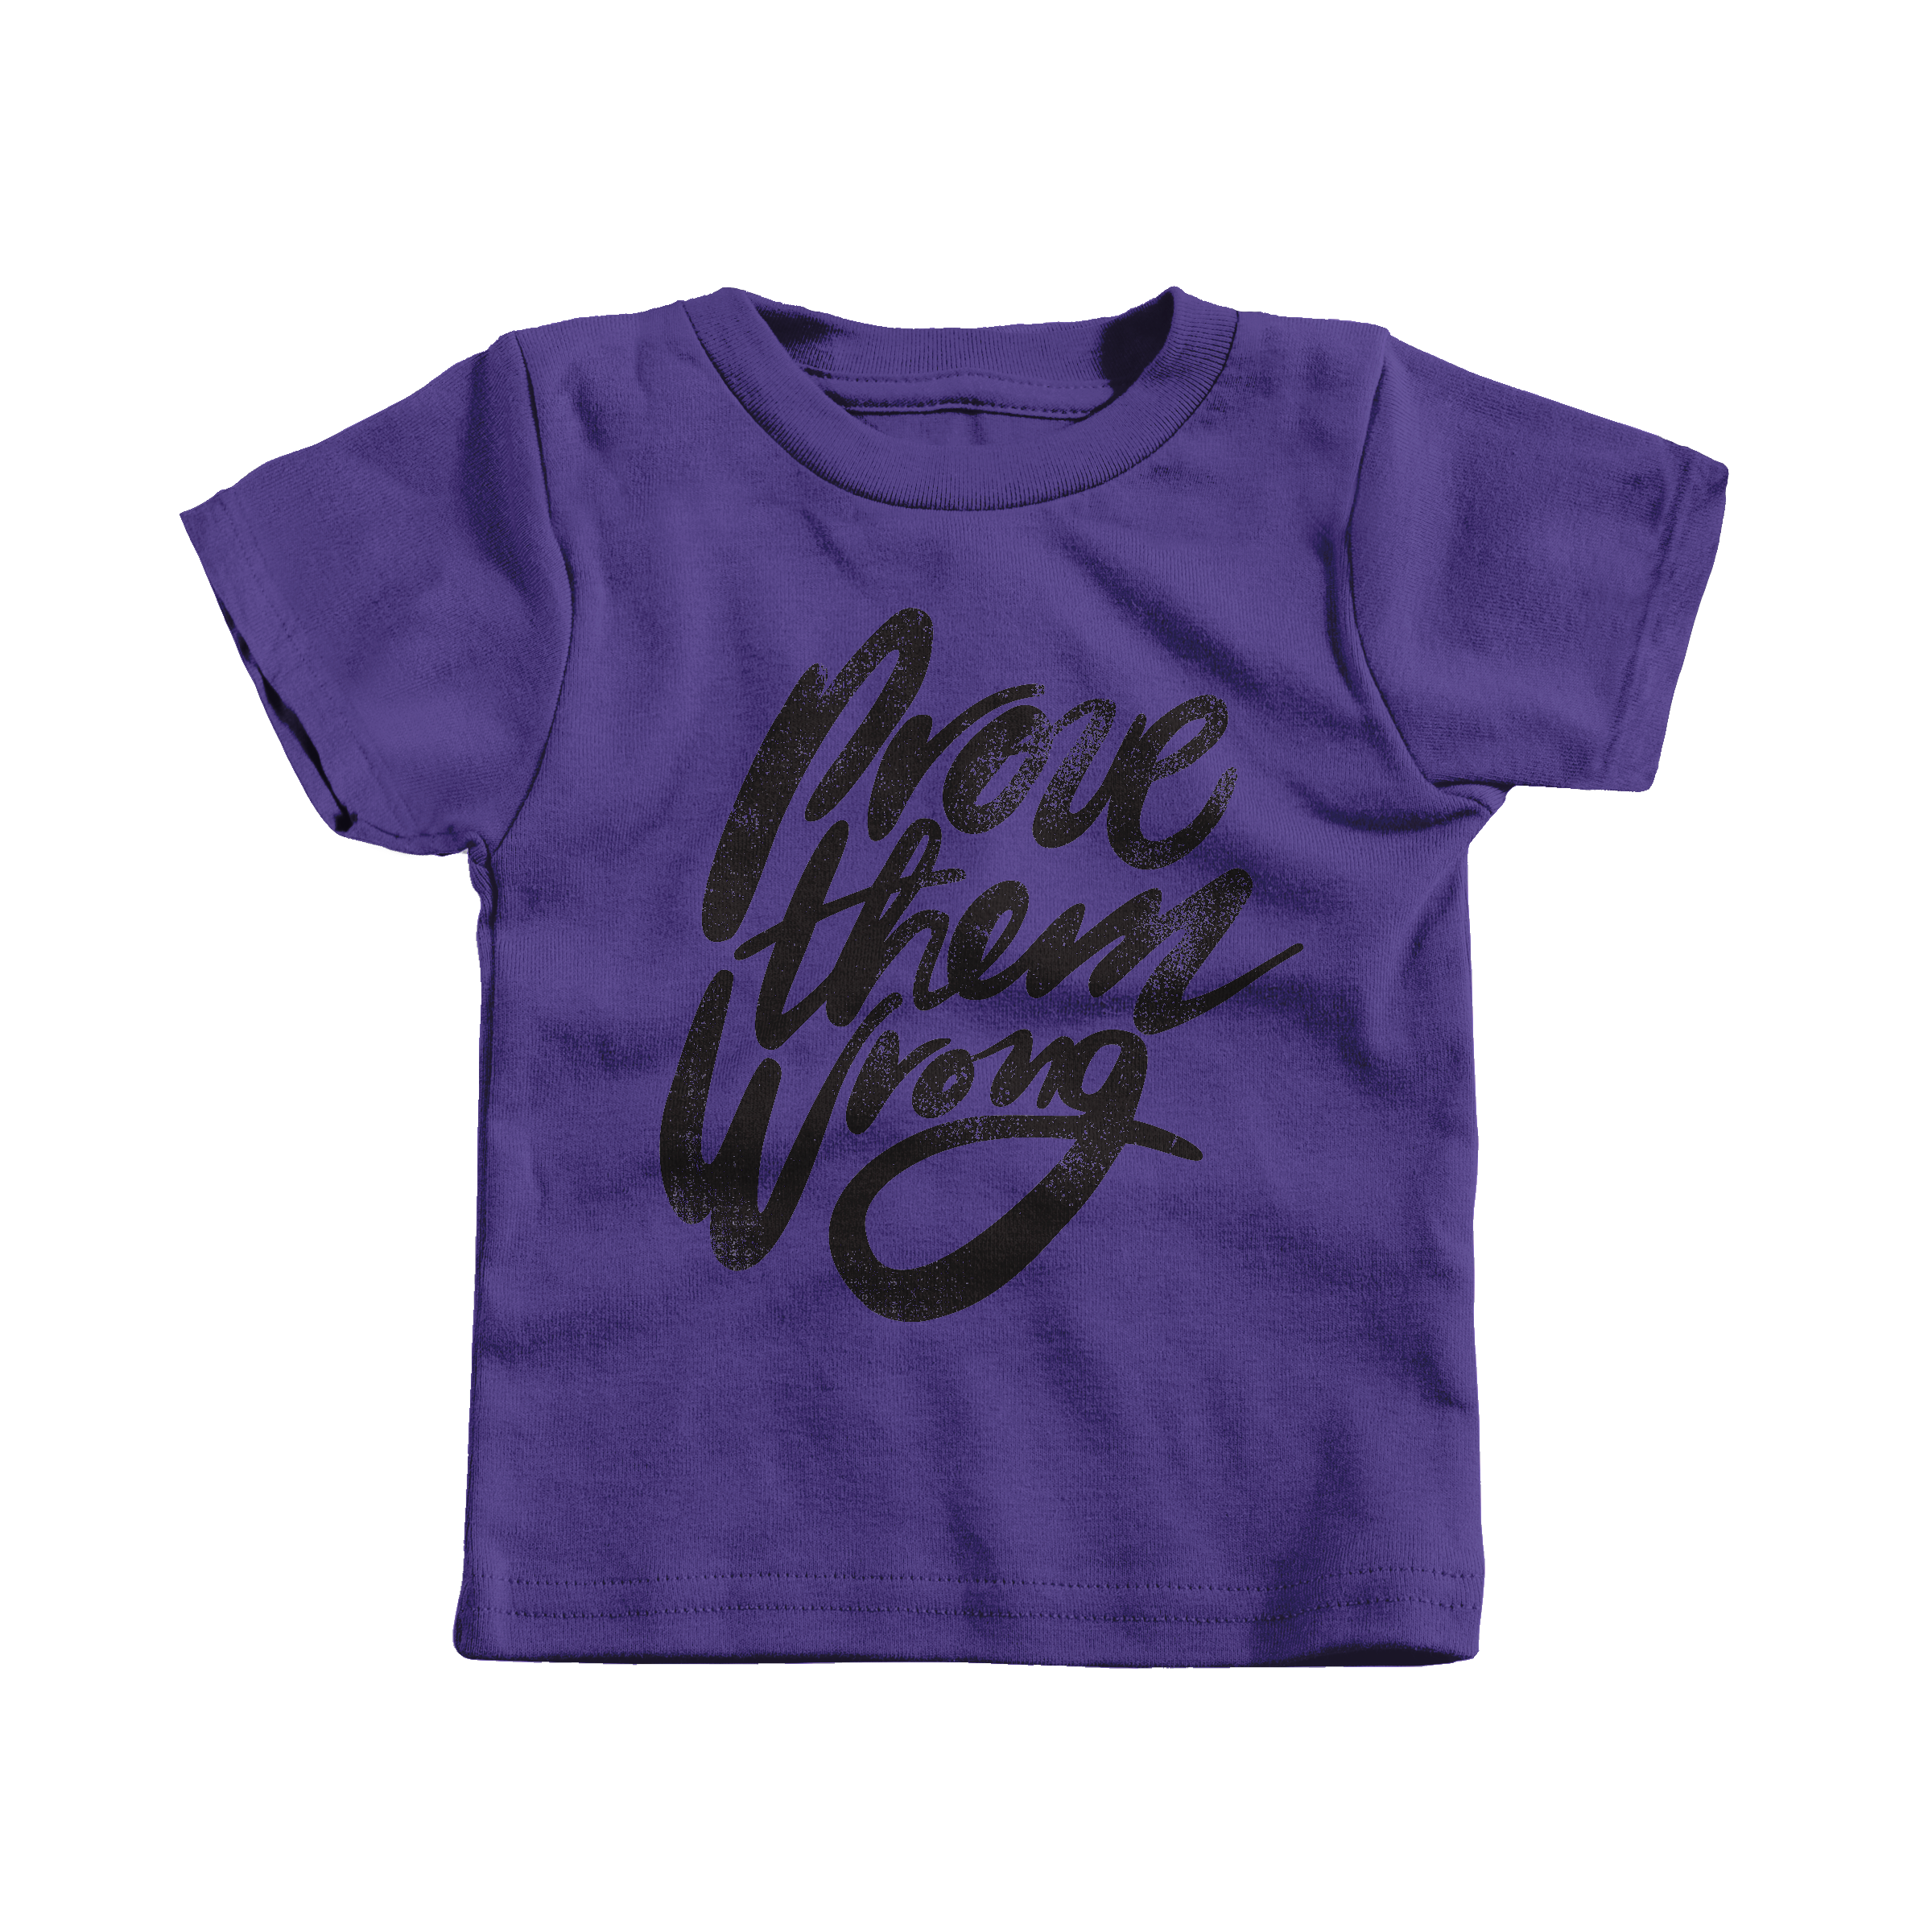 Prove Them Wrong Purple (T-Shirt)